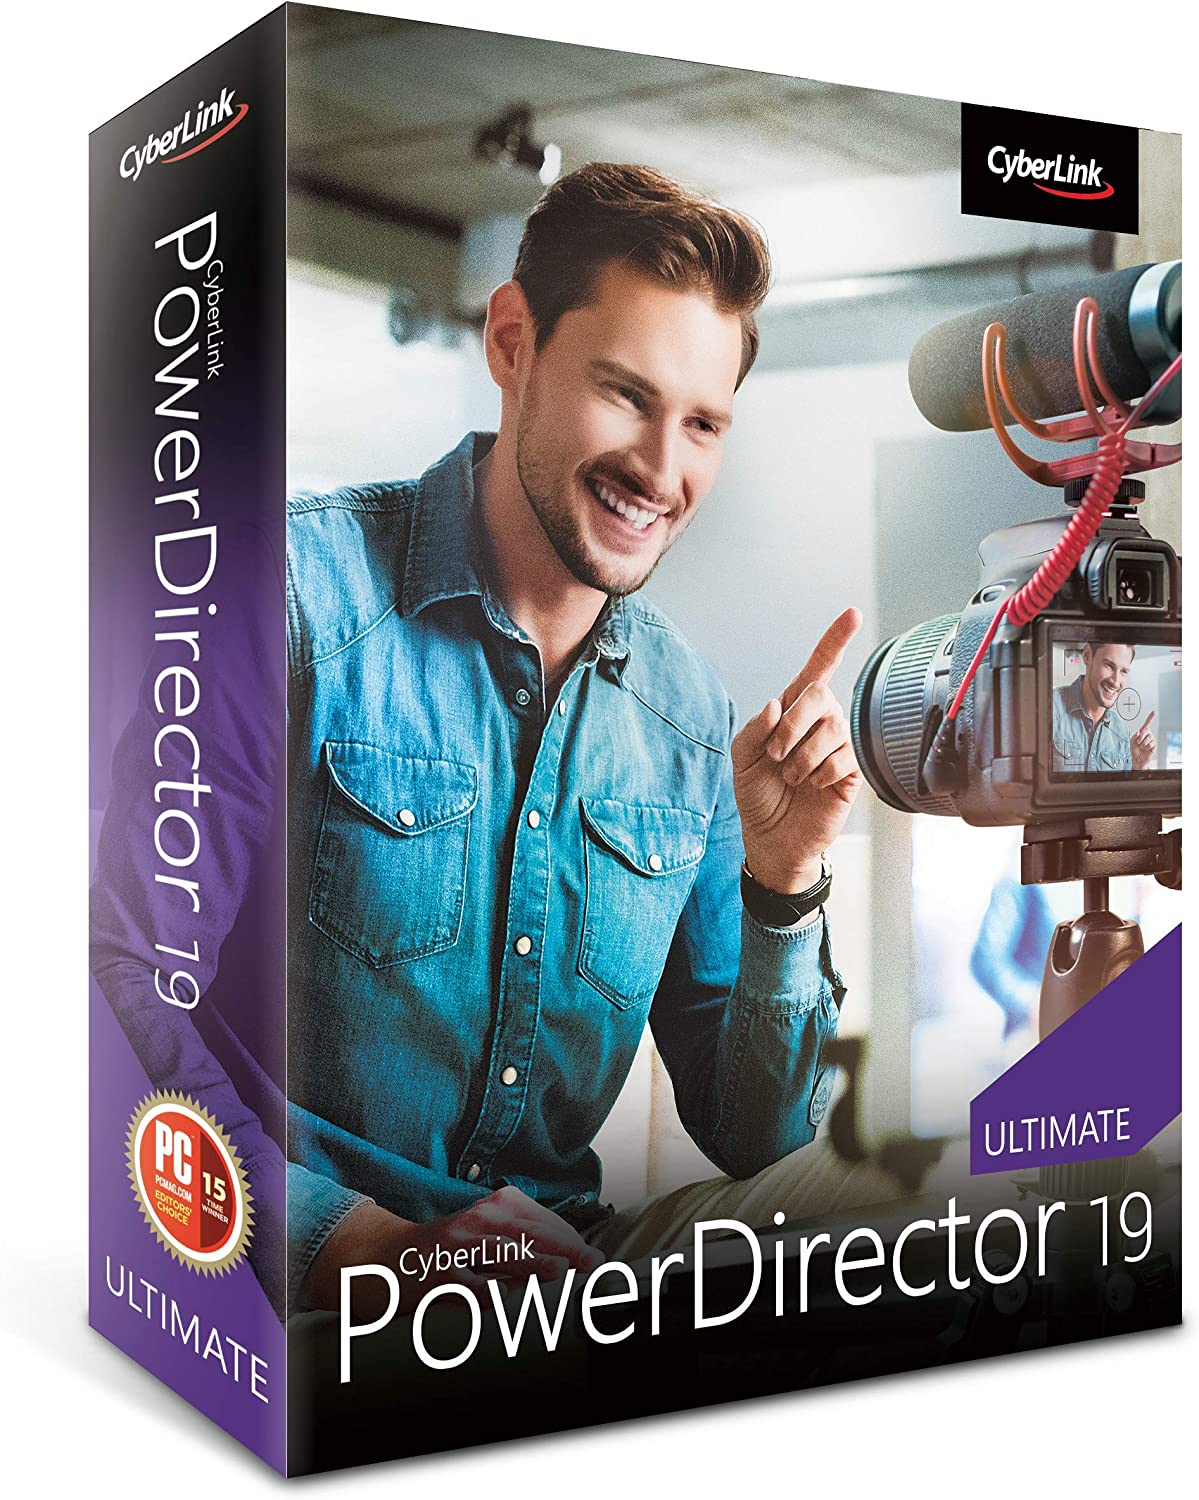 Cyberlink PowerDirector 19 Ultimate Discount Coupon Code